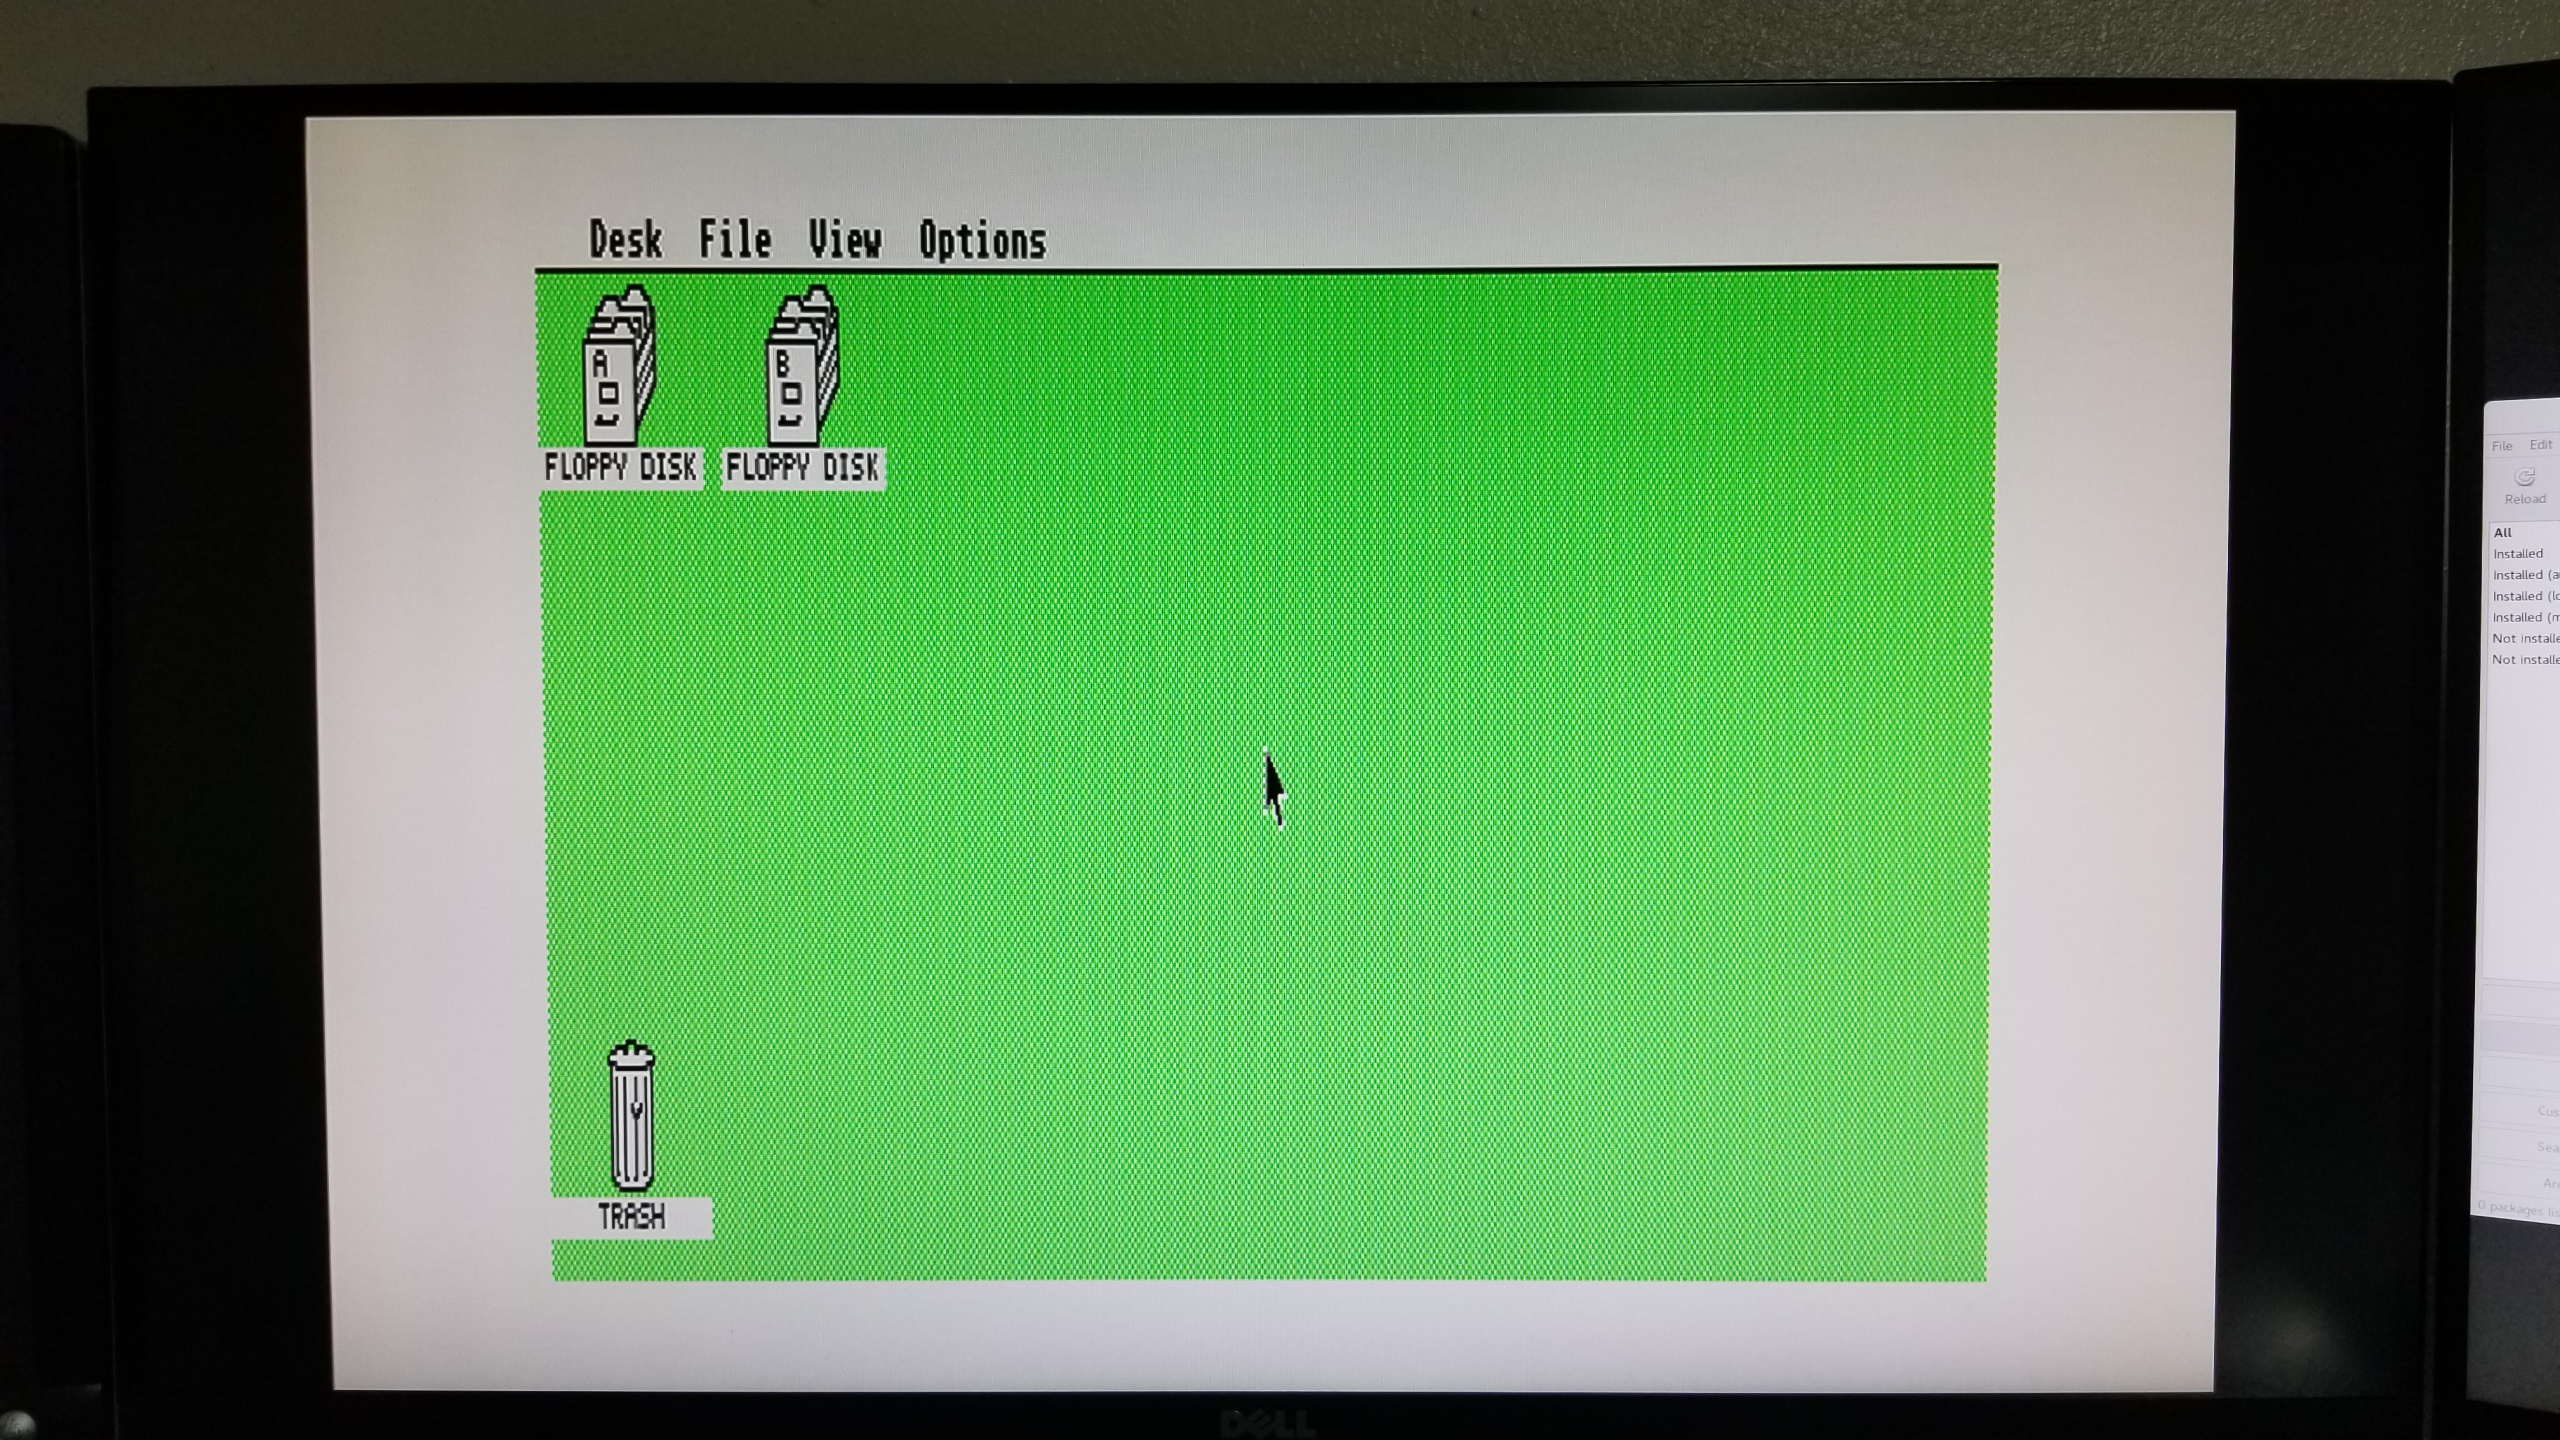 Atari 1040STe connected via SCART cable that gives black screen with 130XE